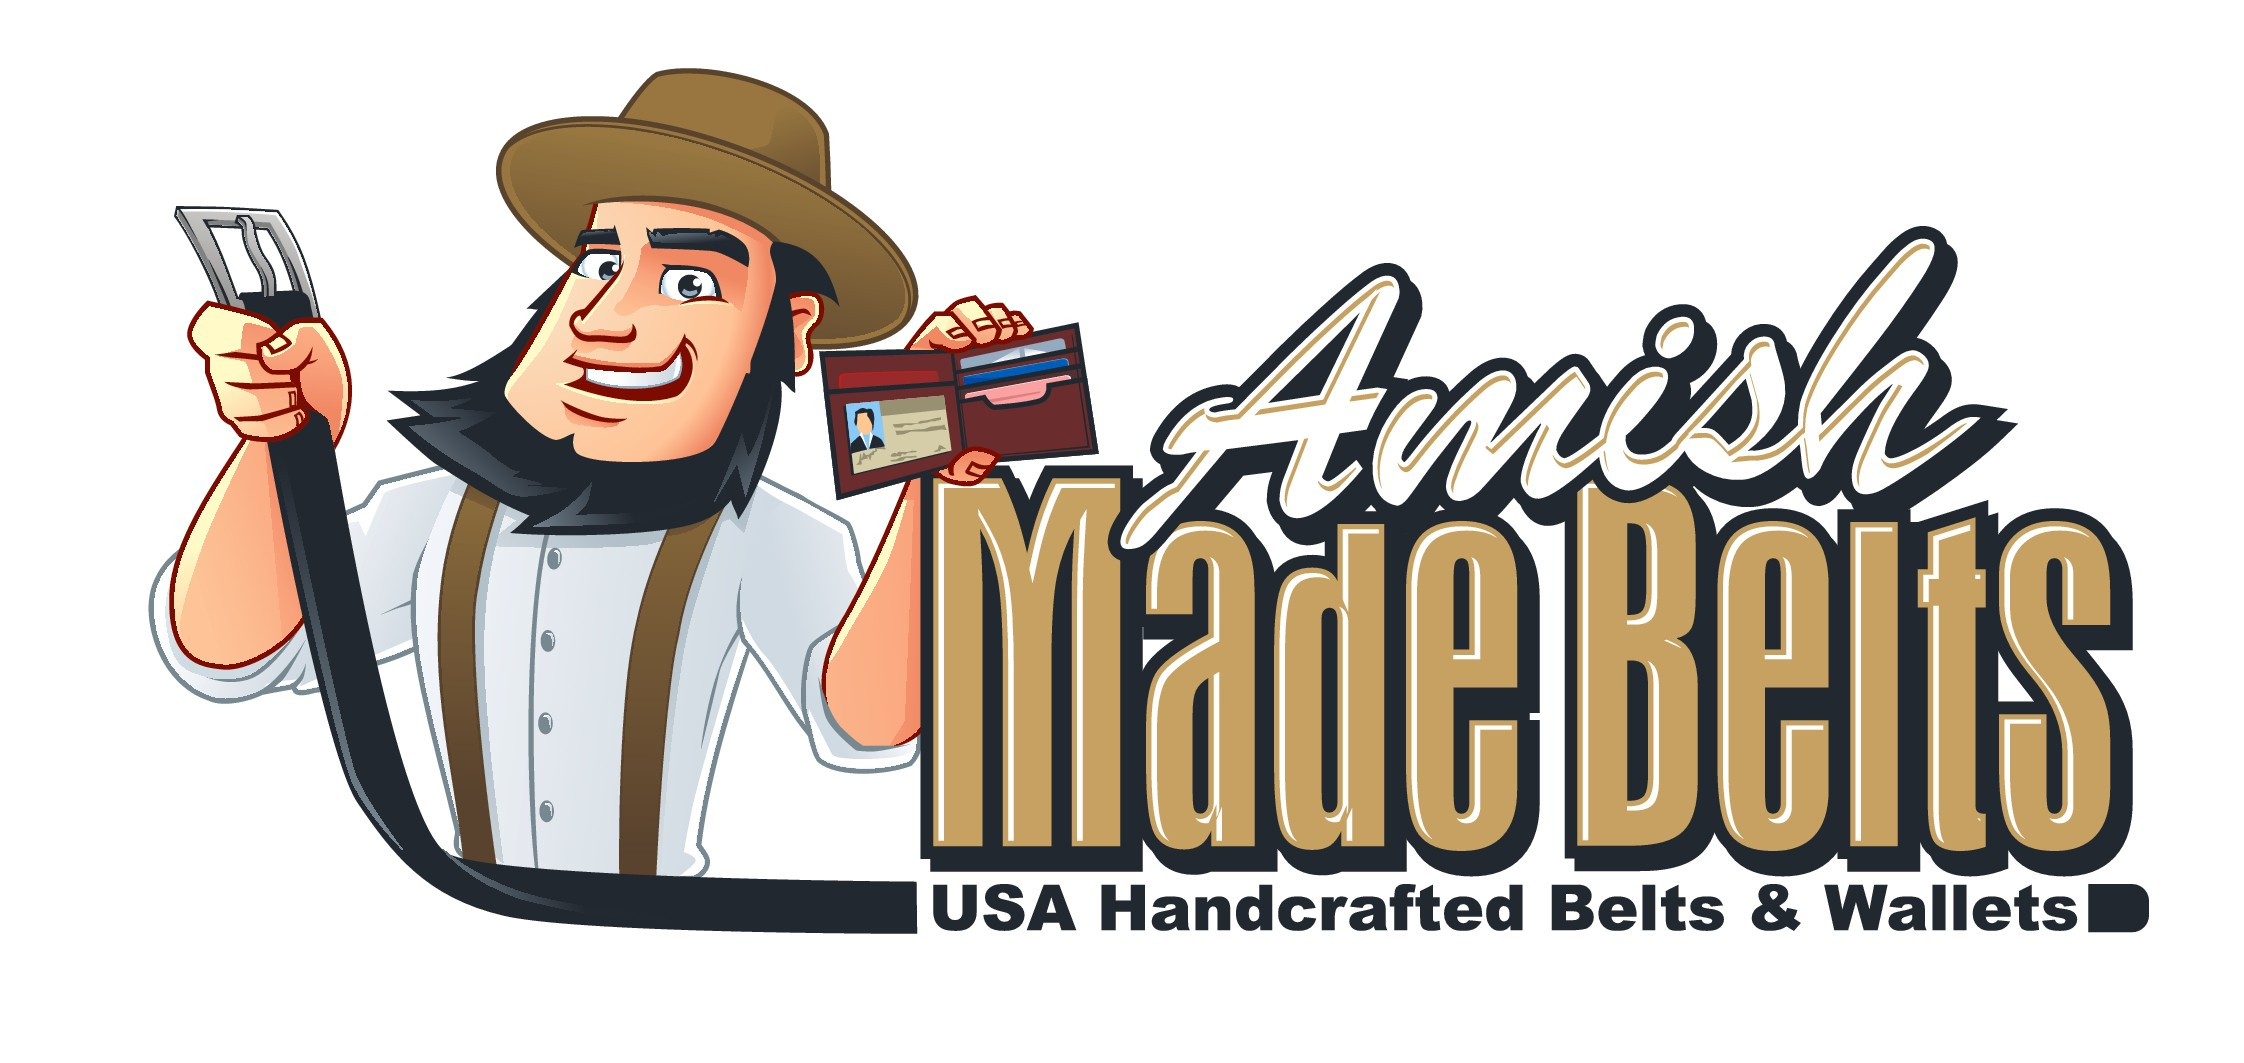 Create a modern and creative logo for AmishMadeBelts.com - Amish Mascot